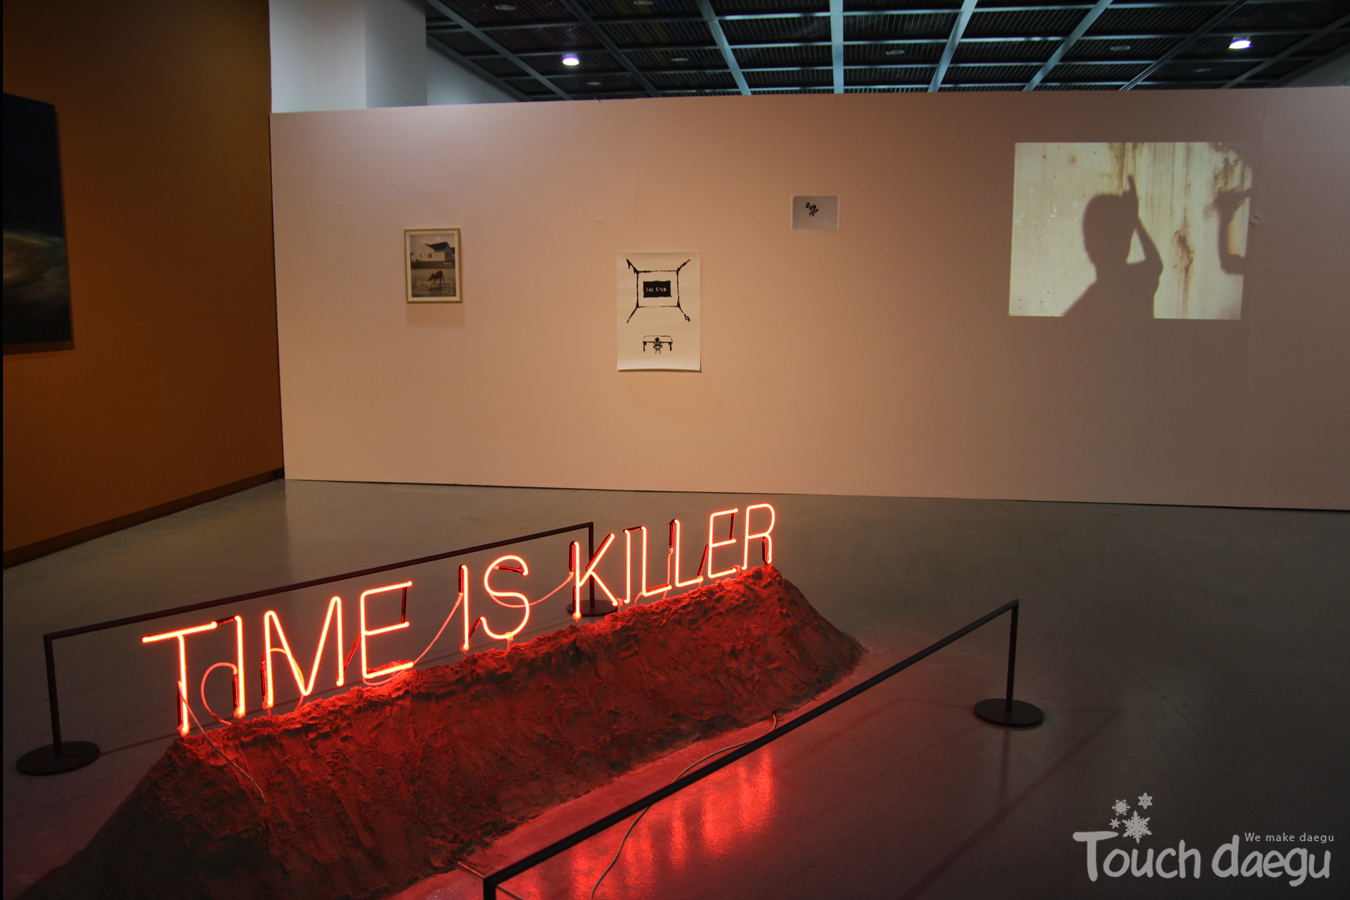 The artwork deals with the temporality through neon signs